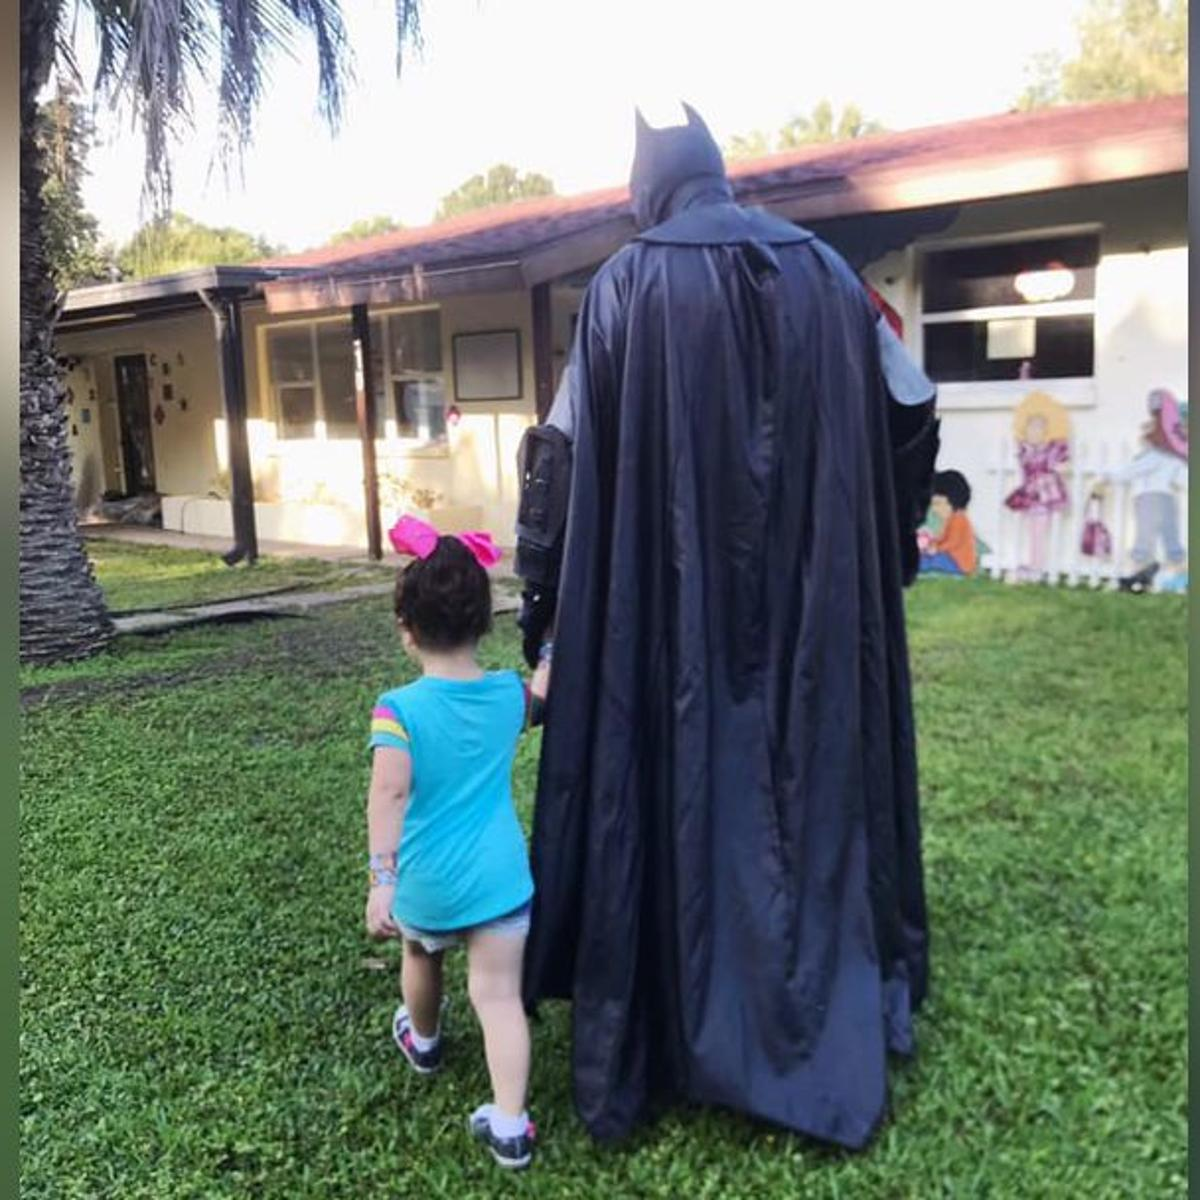 Batman walks bullied 3-year-old girl to school to help her